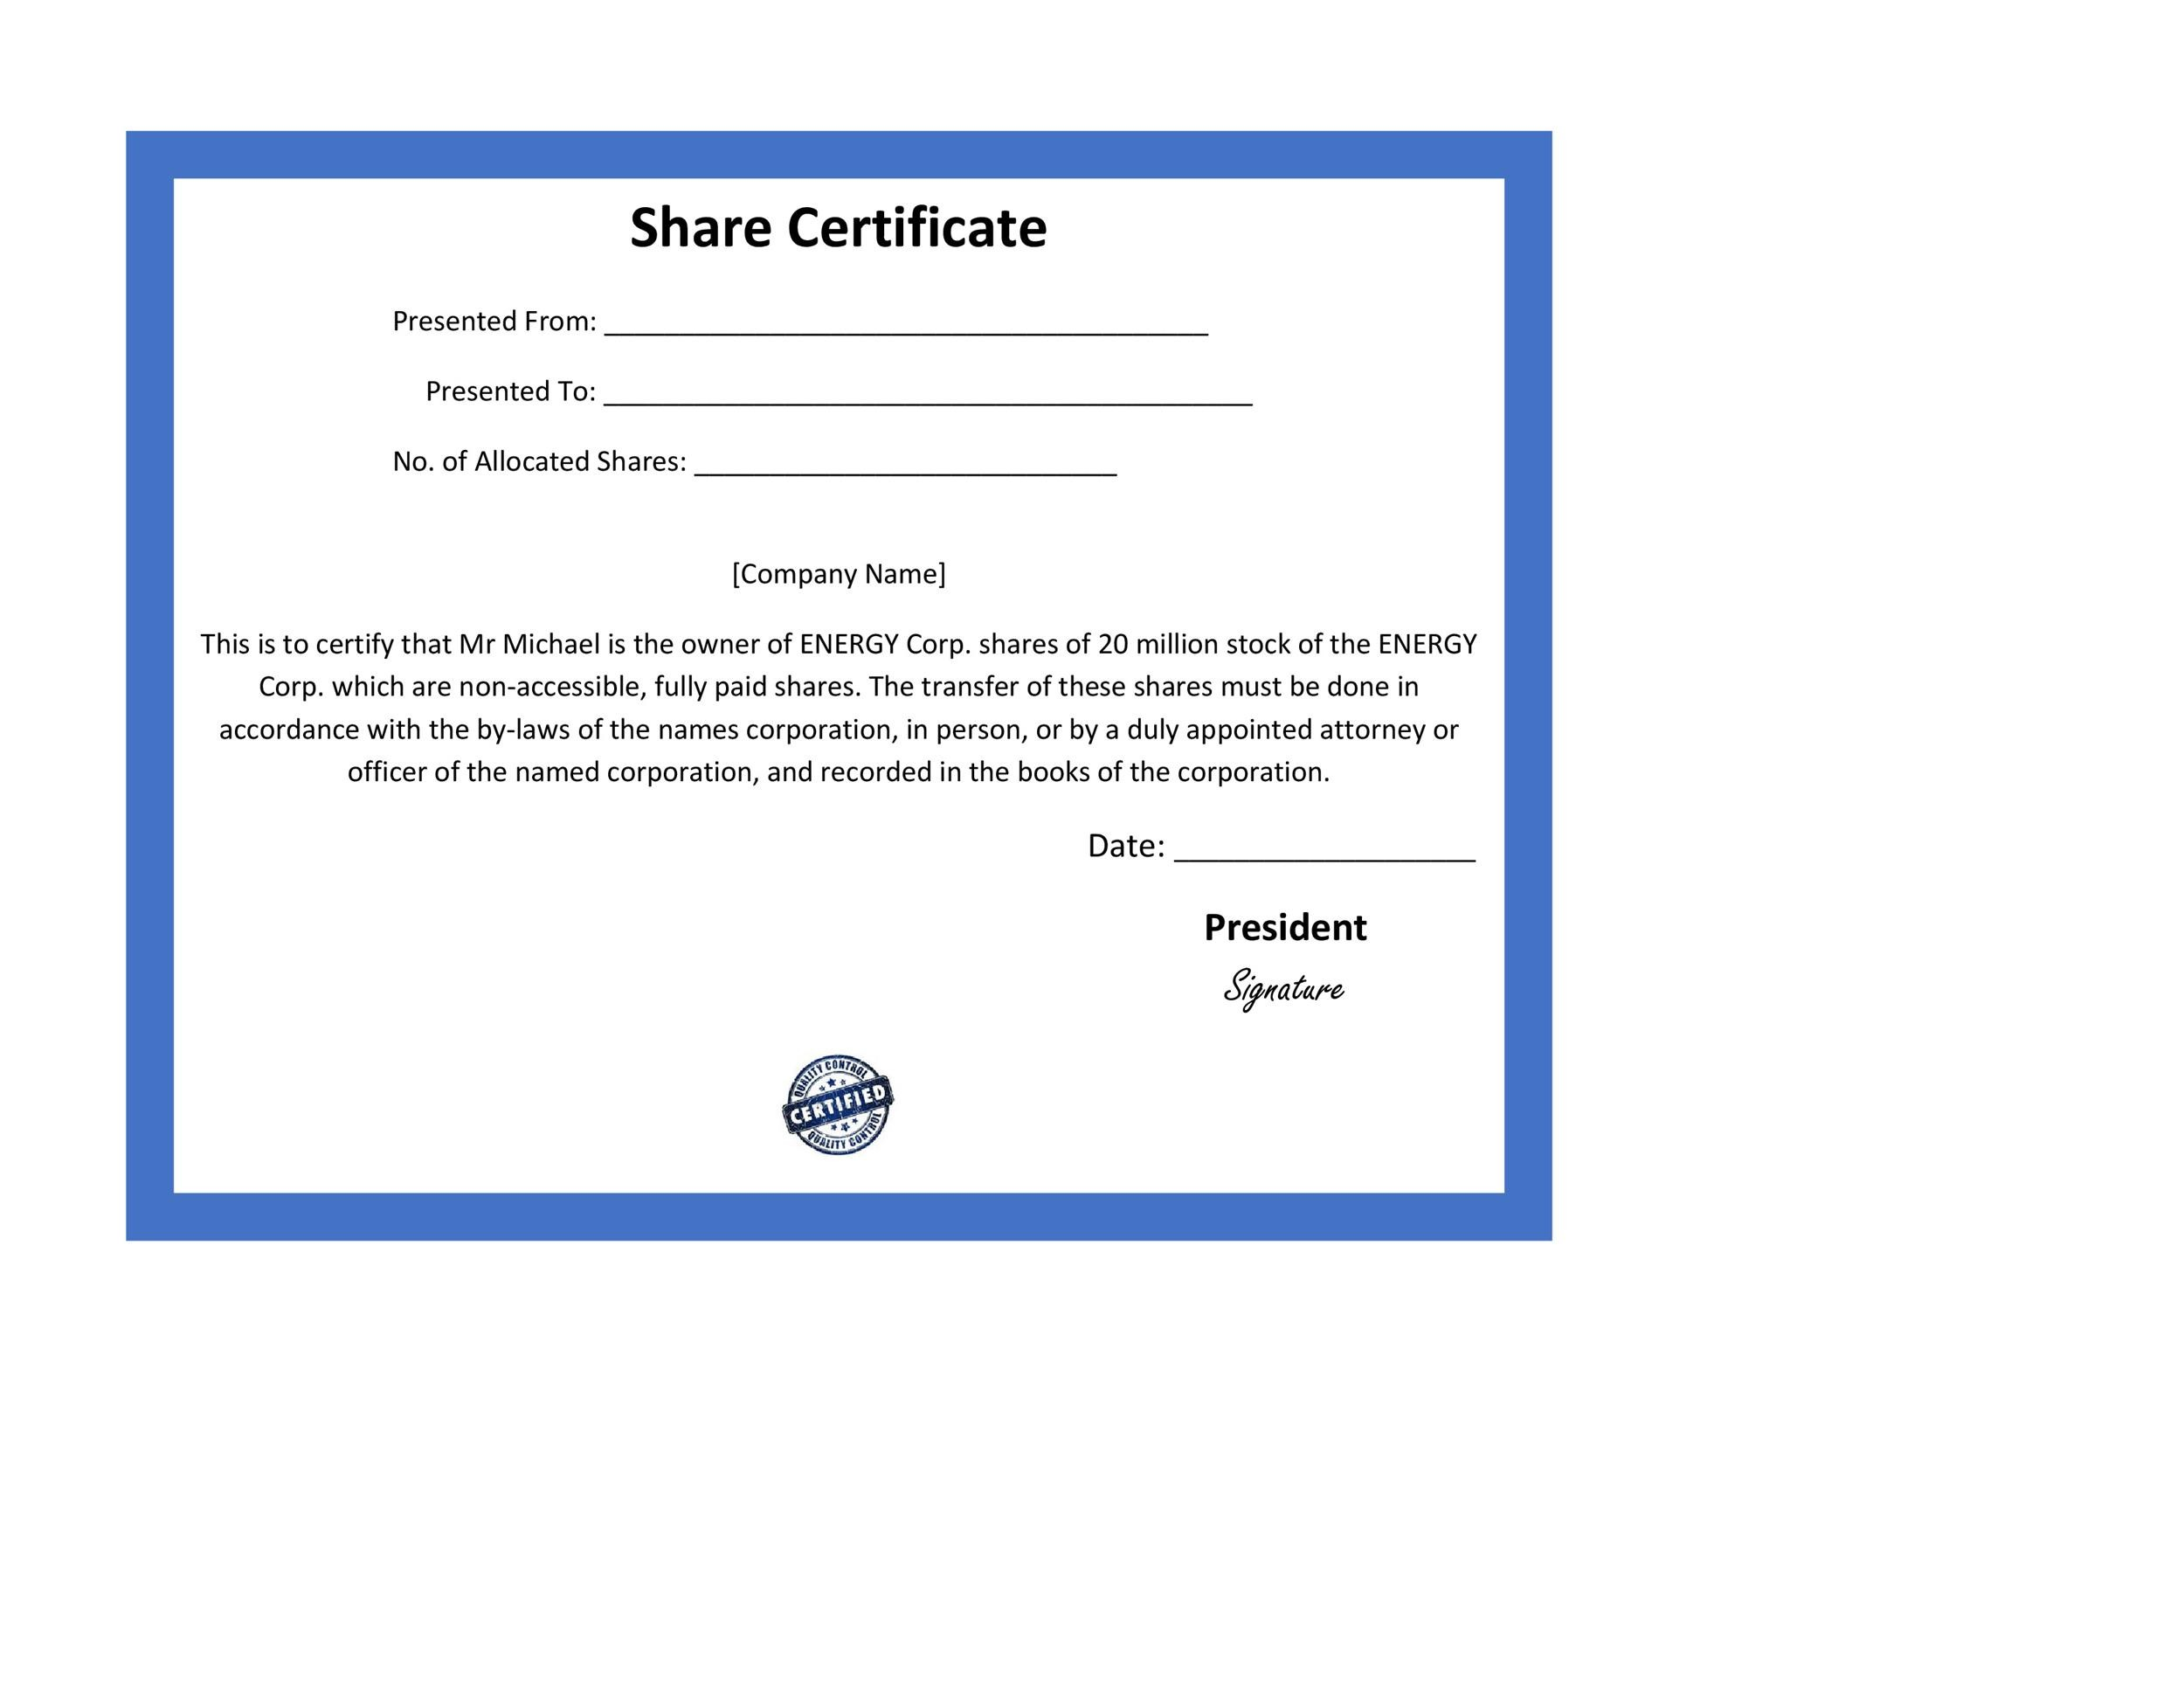 40+ Free Stock Certificate Templates (Word, PDF) - Template Lab - Company Share Certificates